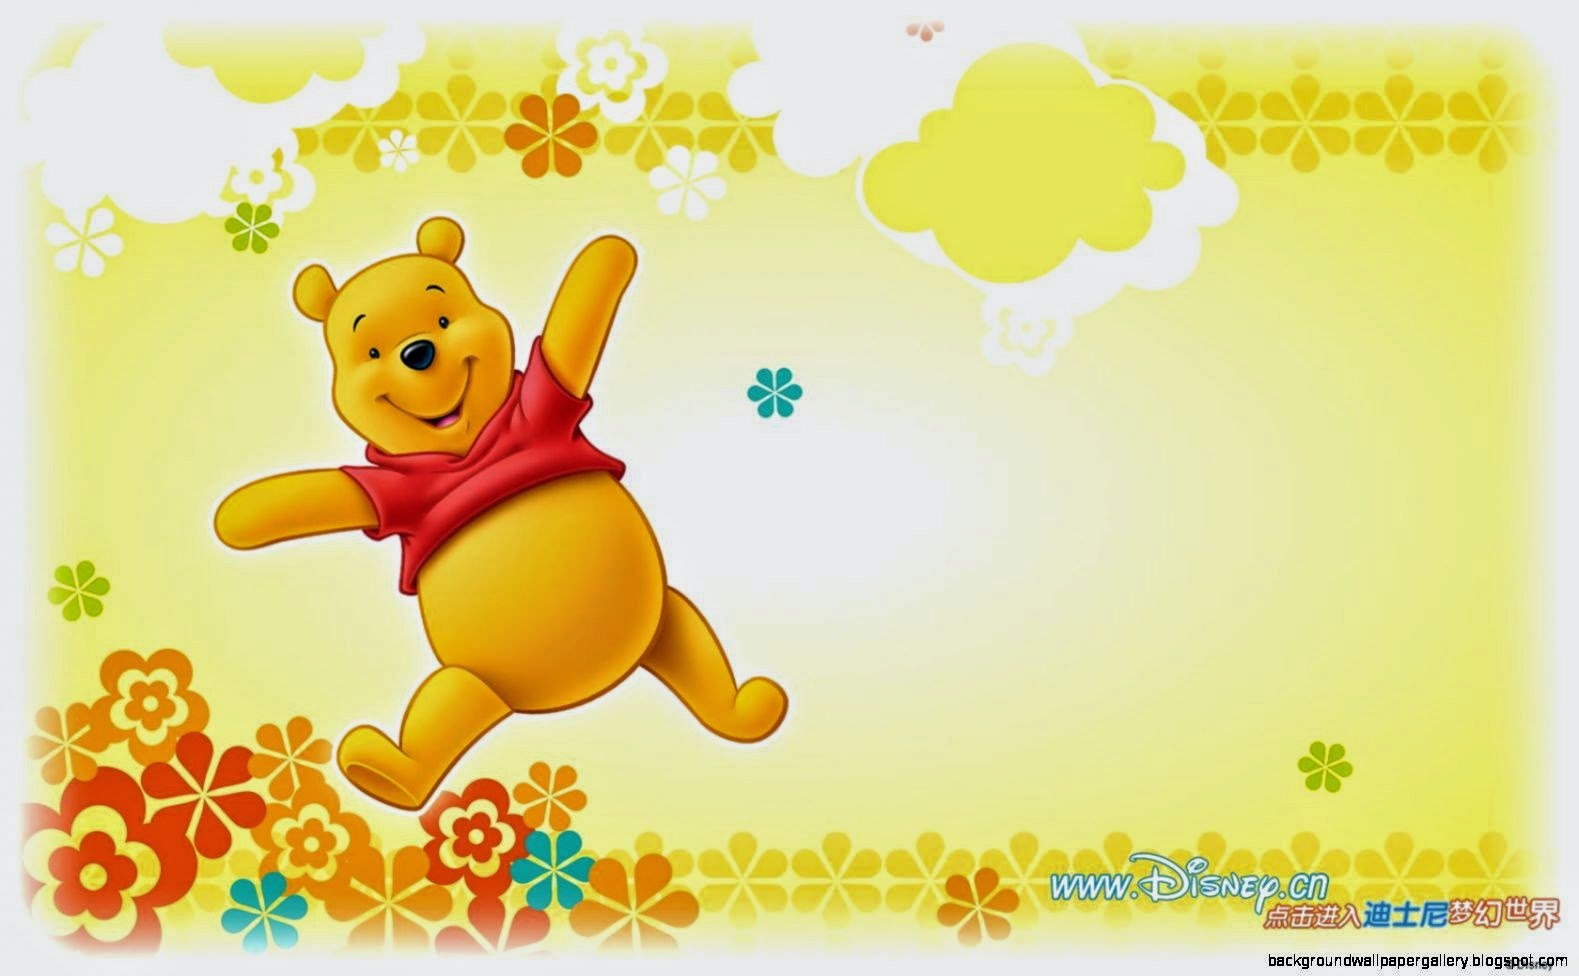 Wallpapers Hd Winnie The Pooh Baby Background Wallpaper Gallery